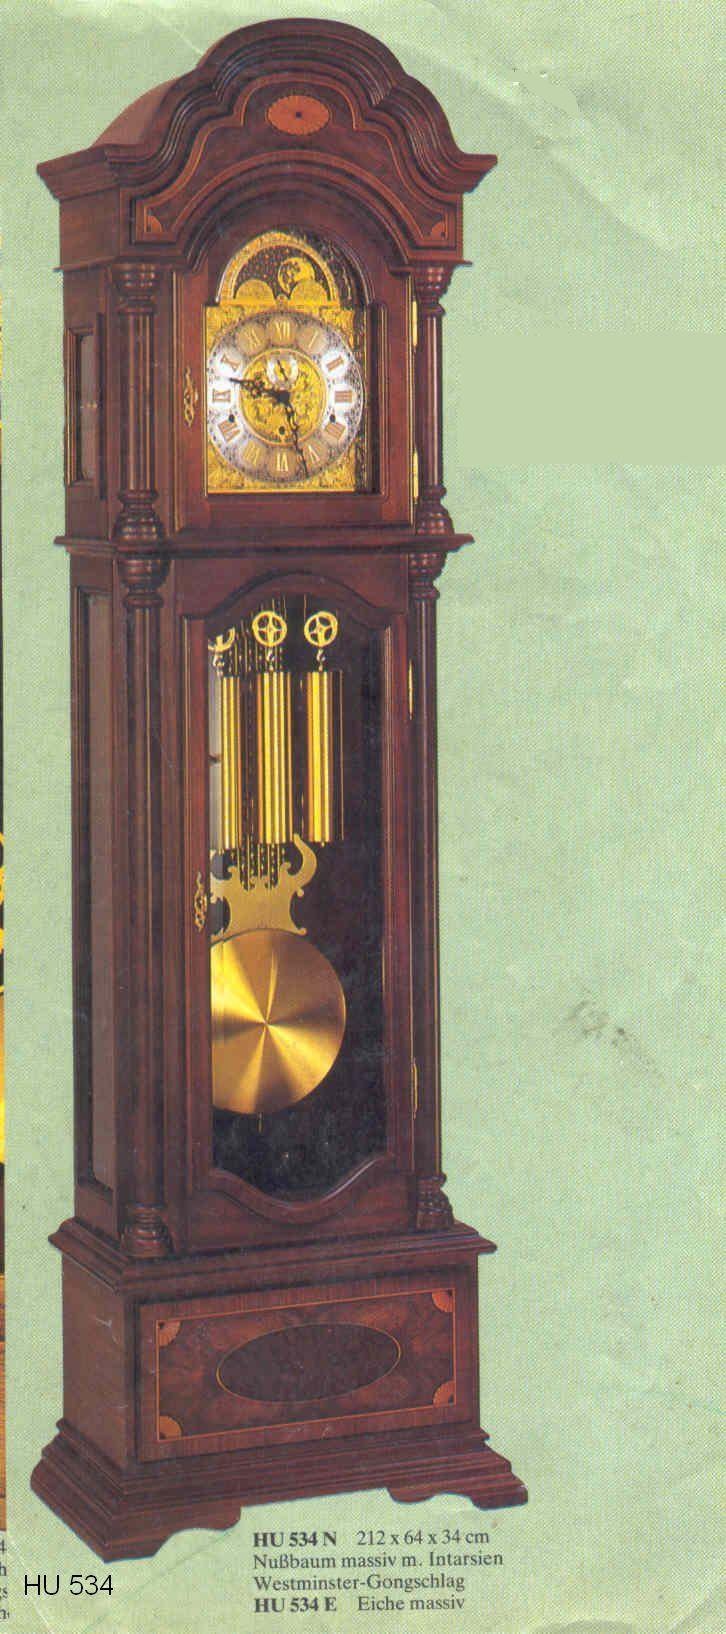 FOR SALE: Grandfather Clocks From Germany